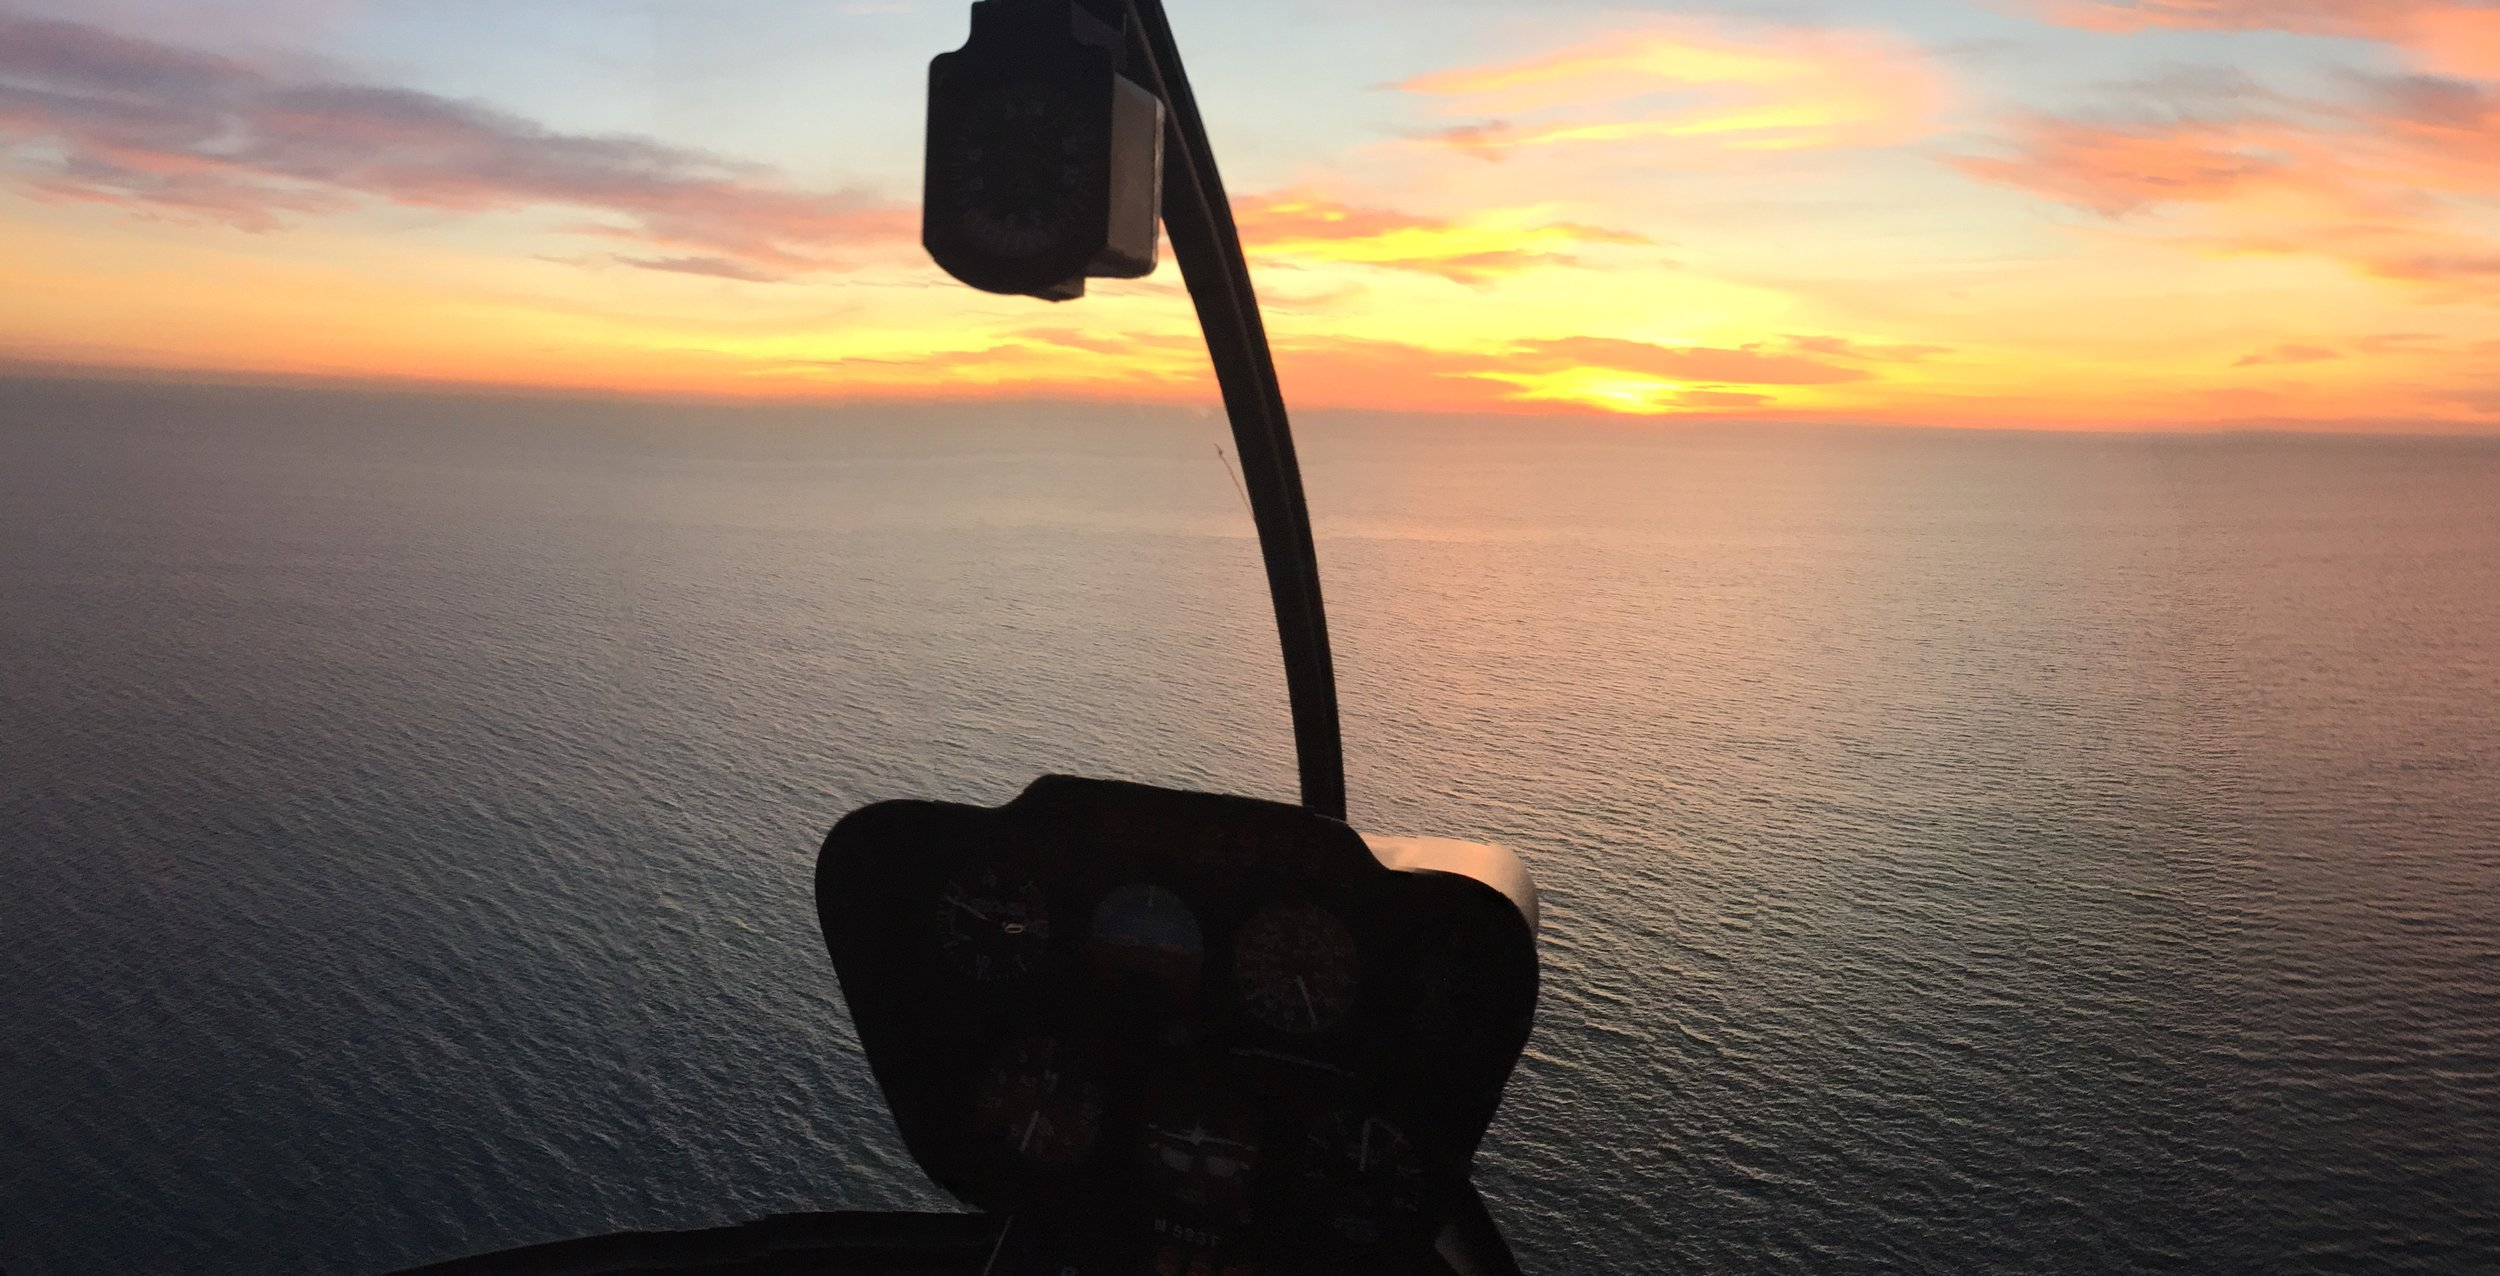 Sunset Helicopter Ride San Diego